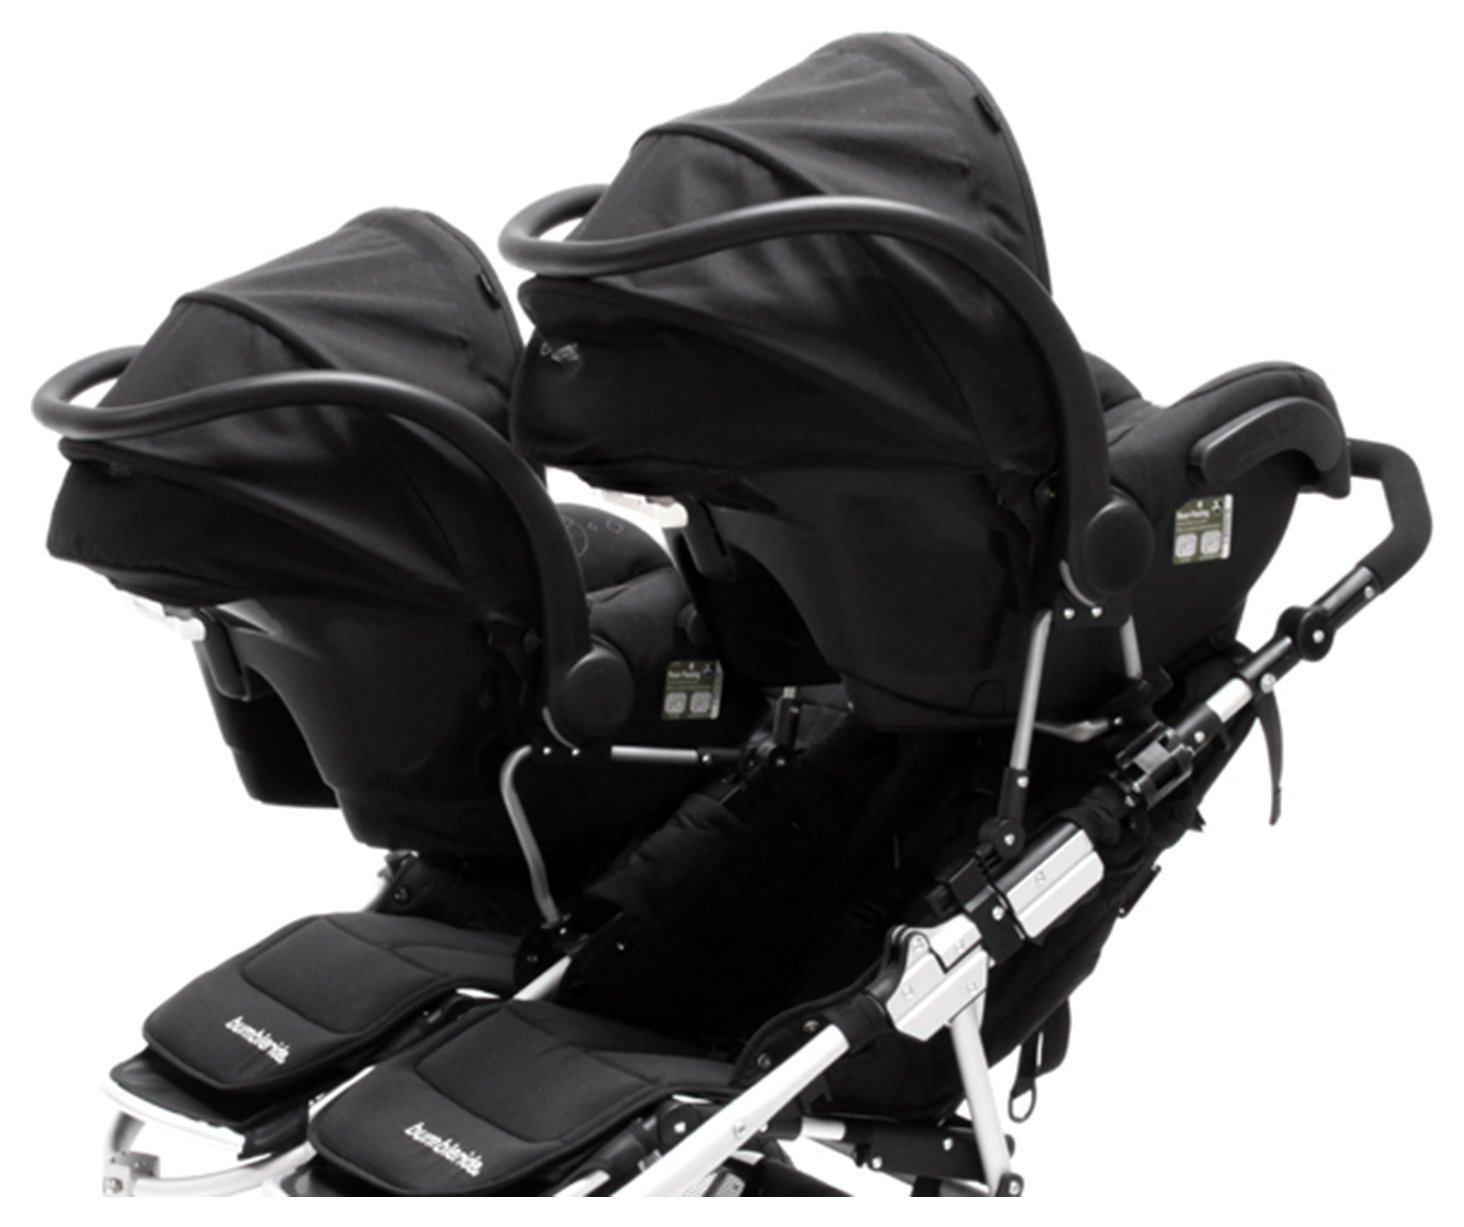 Image of Bumbleride Indie Twin Upper Car Seat Adapter.